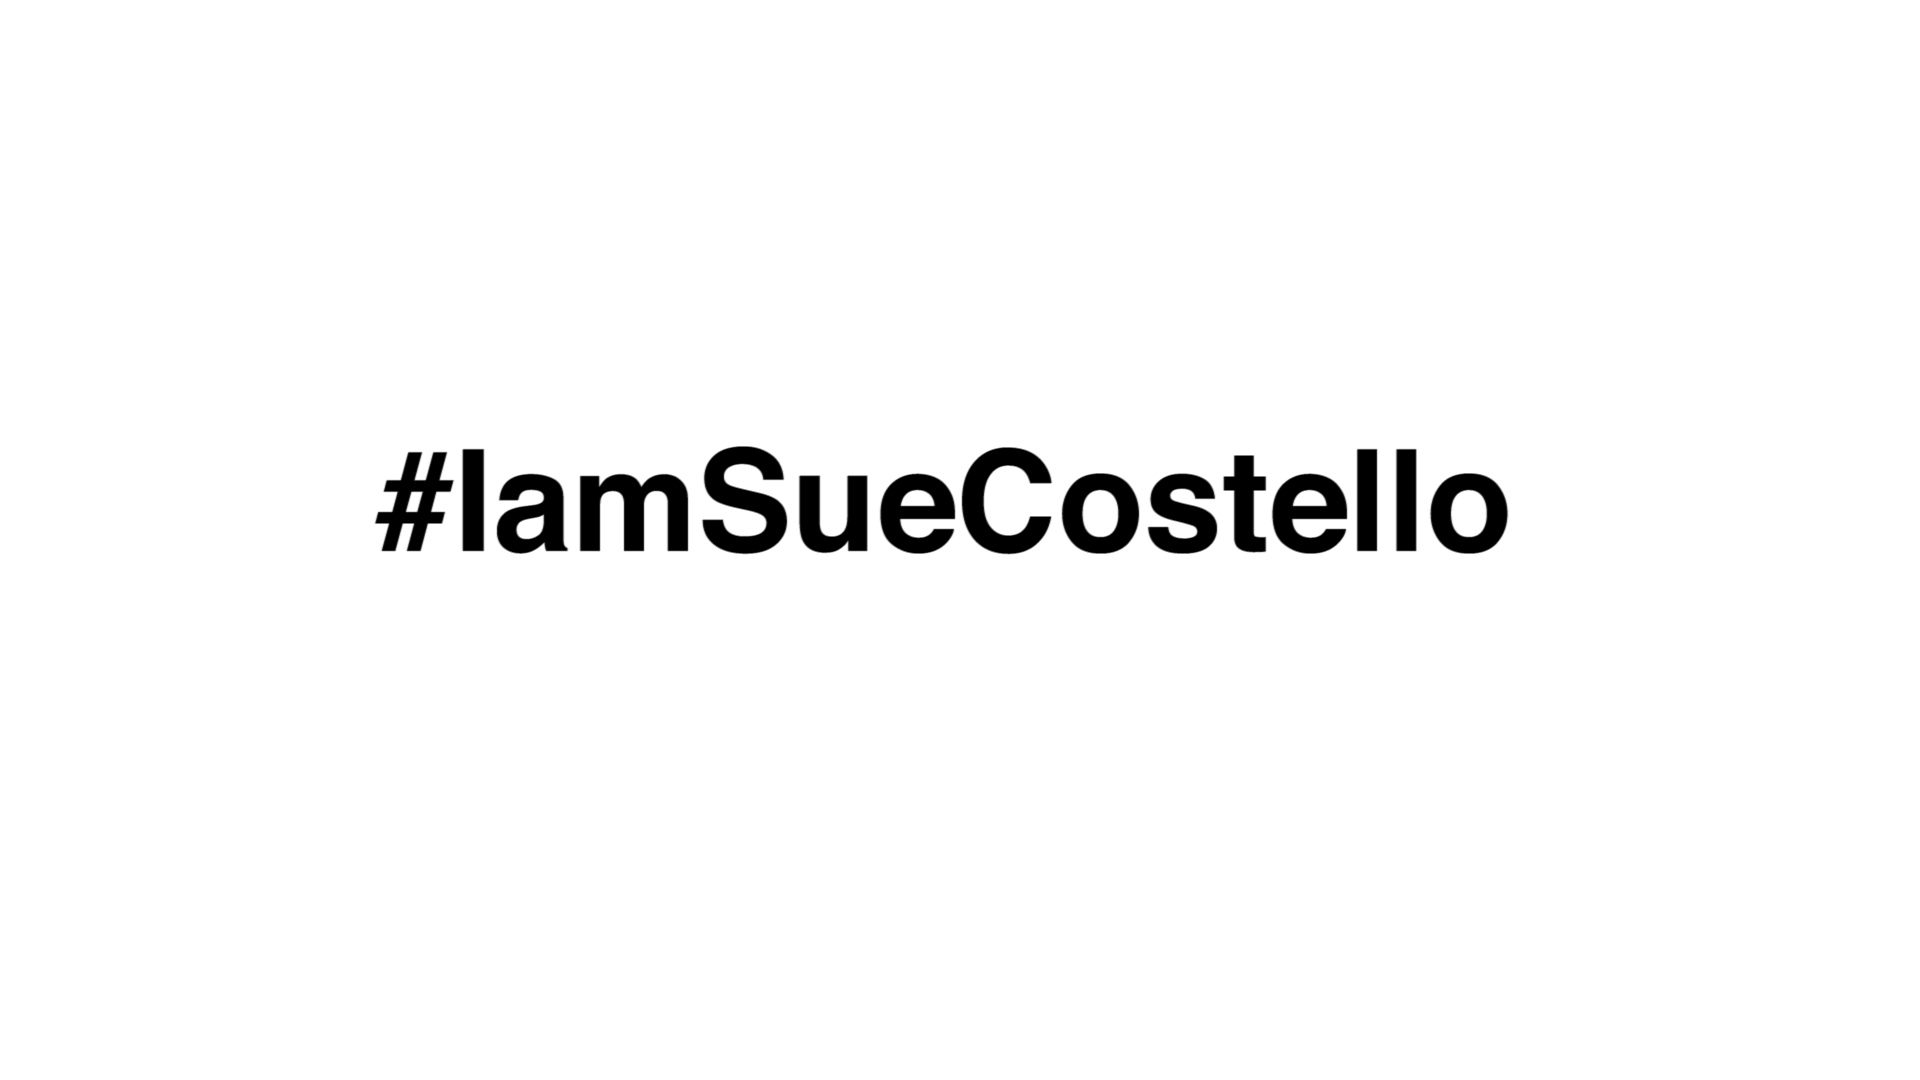 #IamSueCostello at Broadway Comedy Club on Wednesday March 8th #IamSueCostello